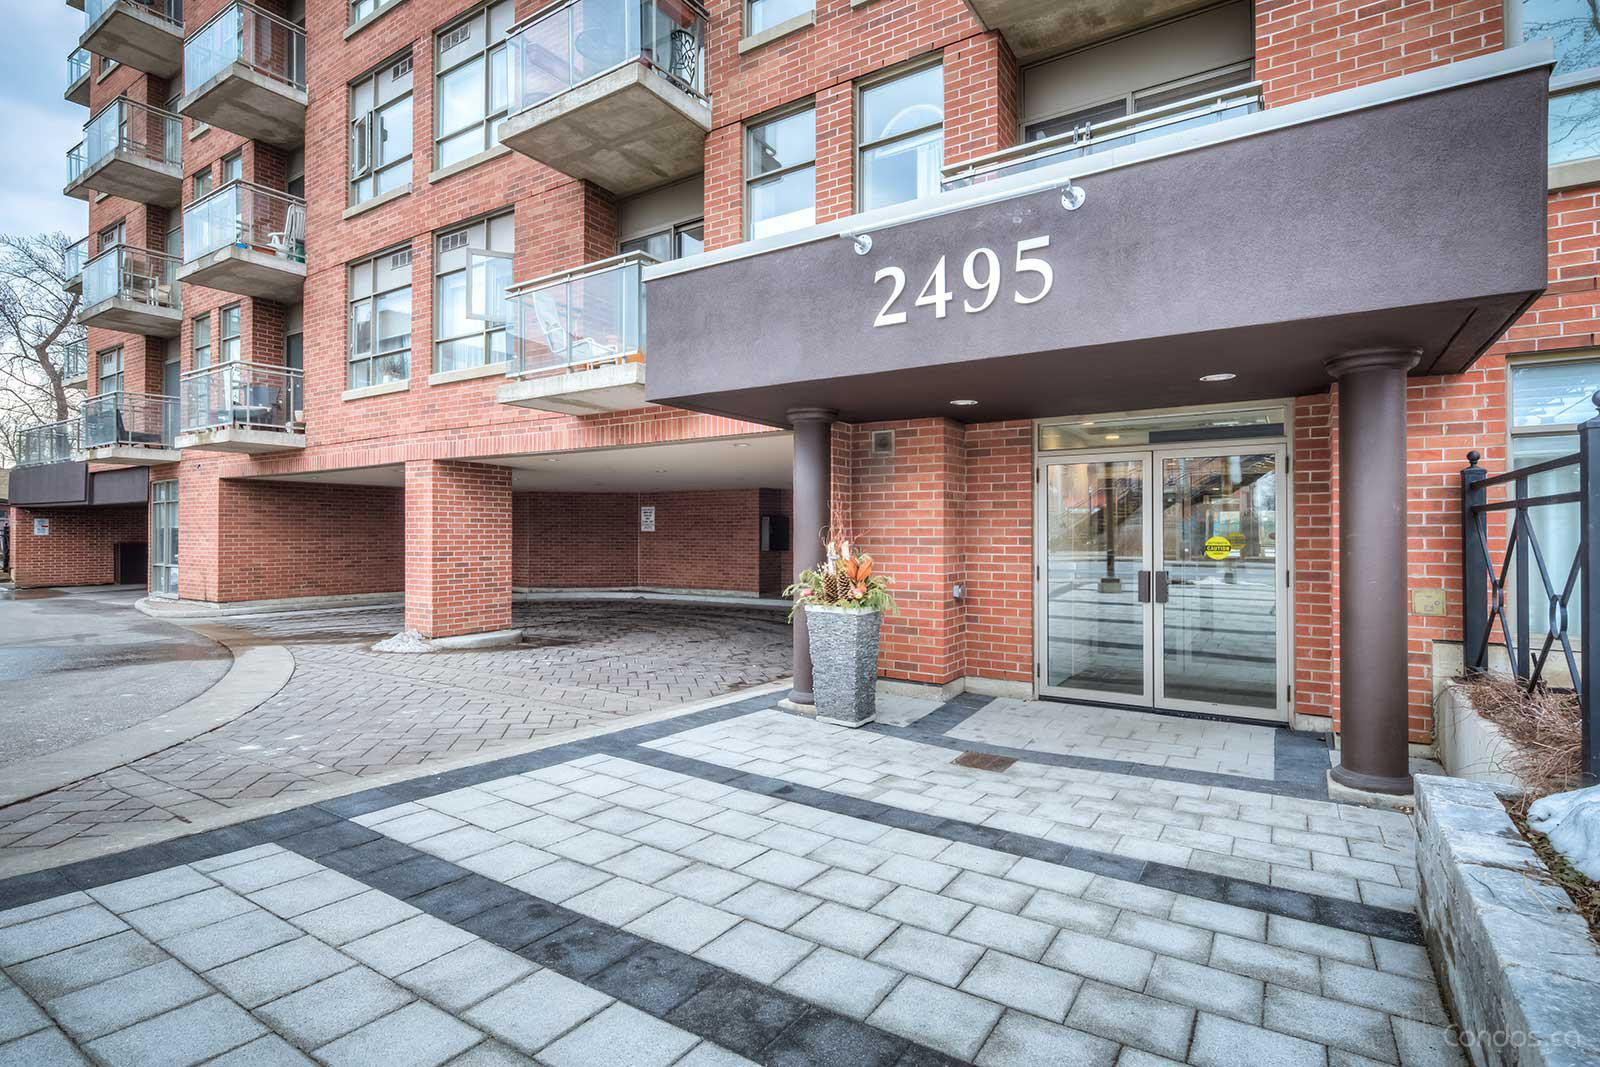 Glen Lake at 2495 Dundas St W, Toronto 0